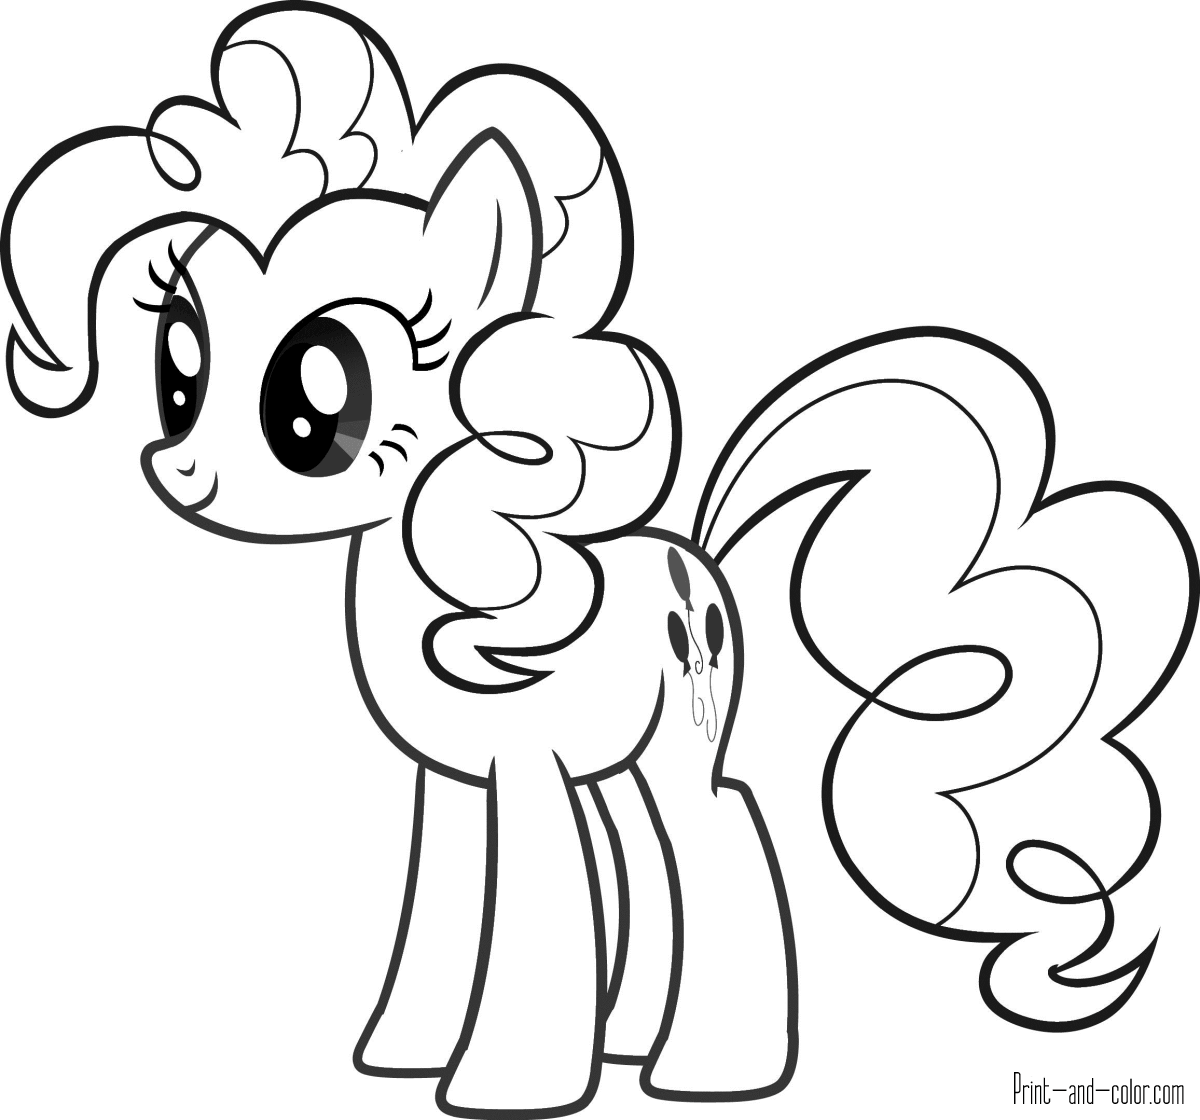 my little pony coloring images my little pony coloring pages print and colorcom images my coloring little pony